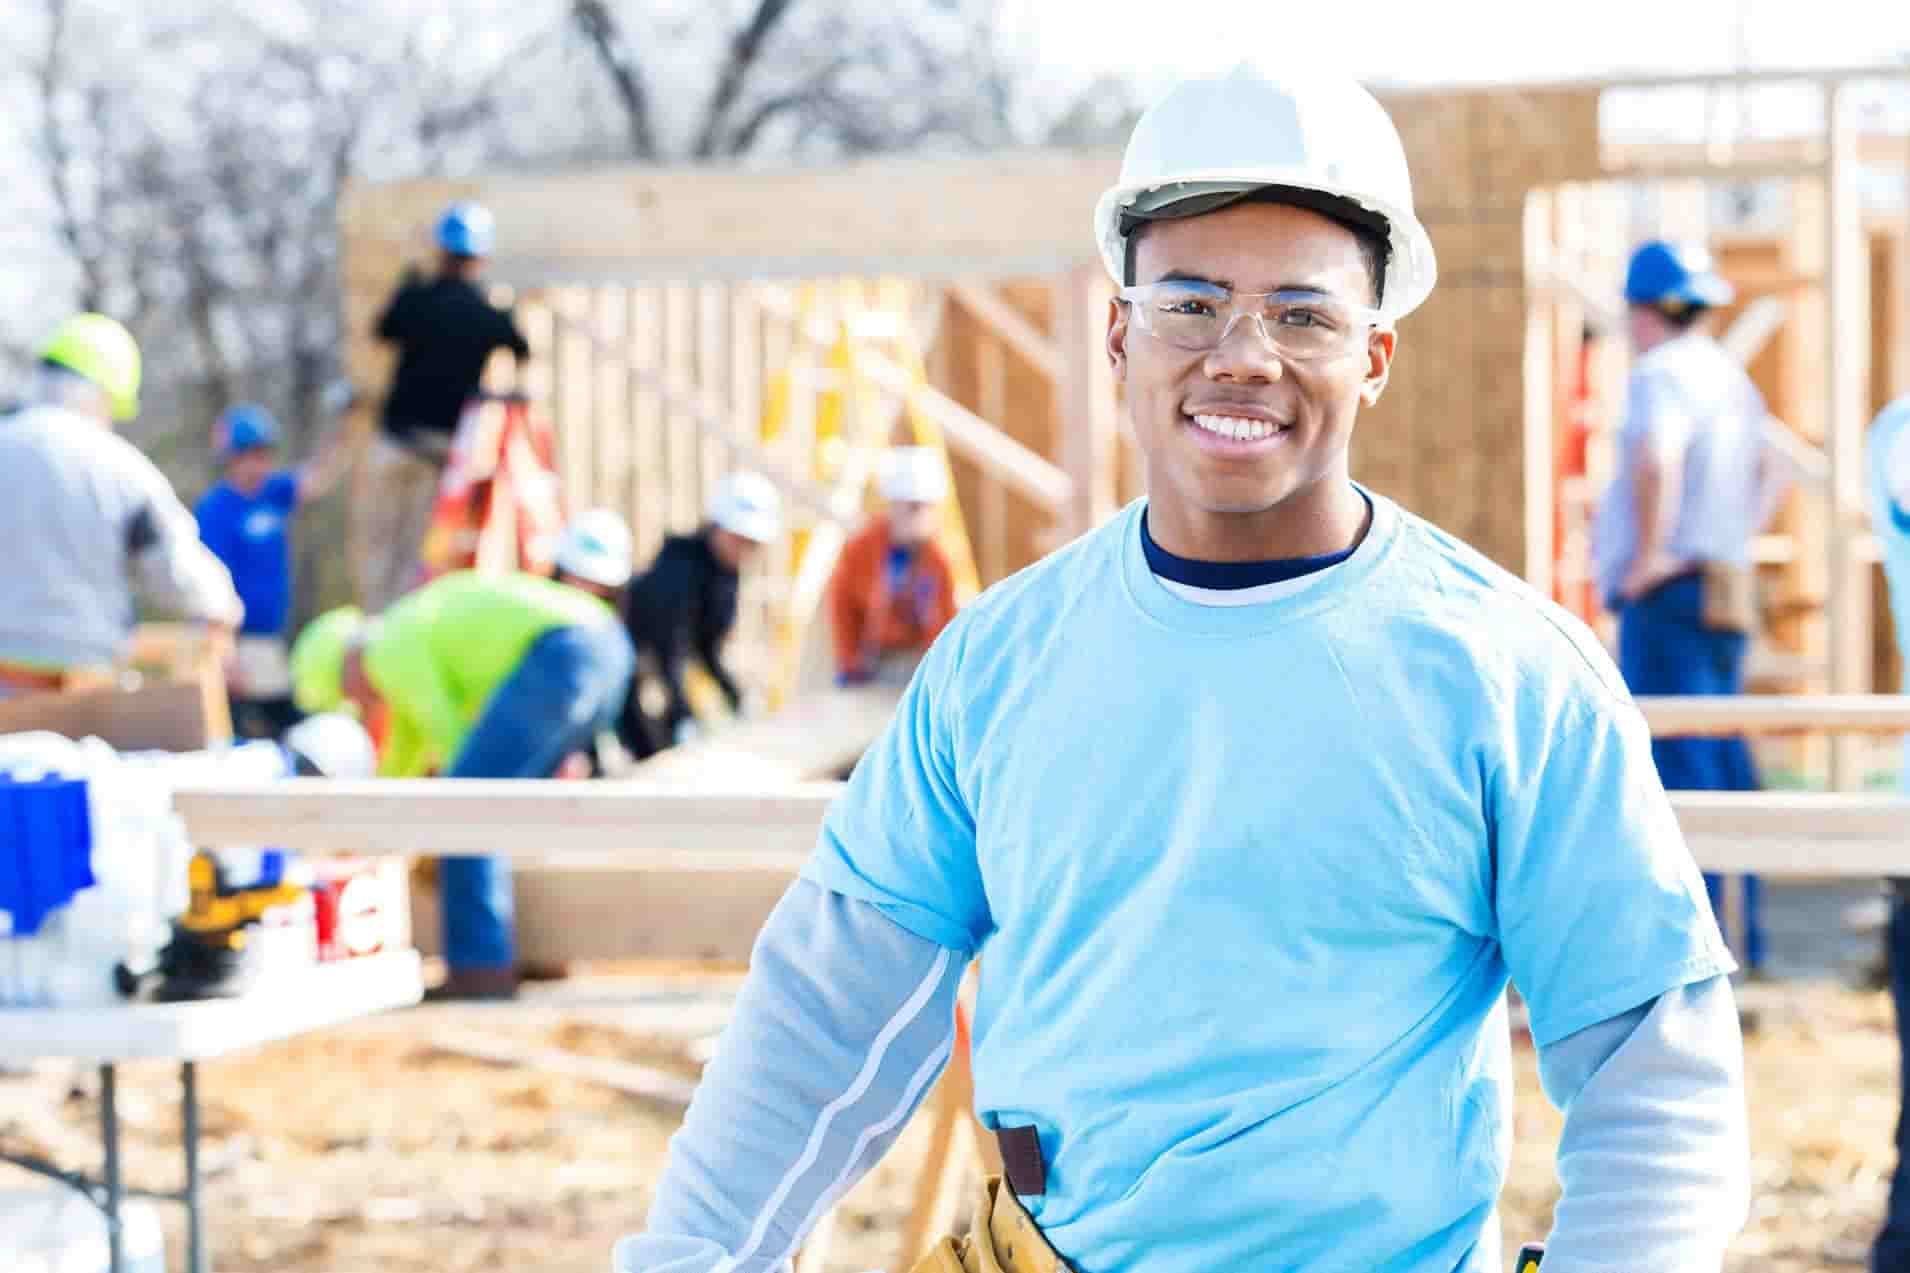 Beazer employee smiling on construction site